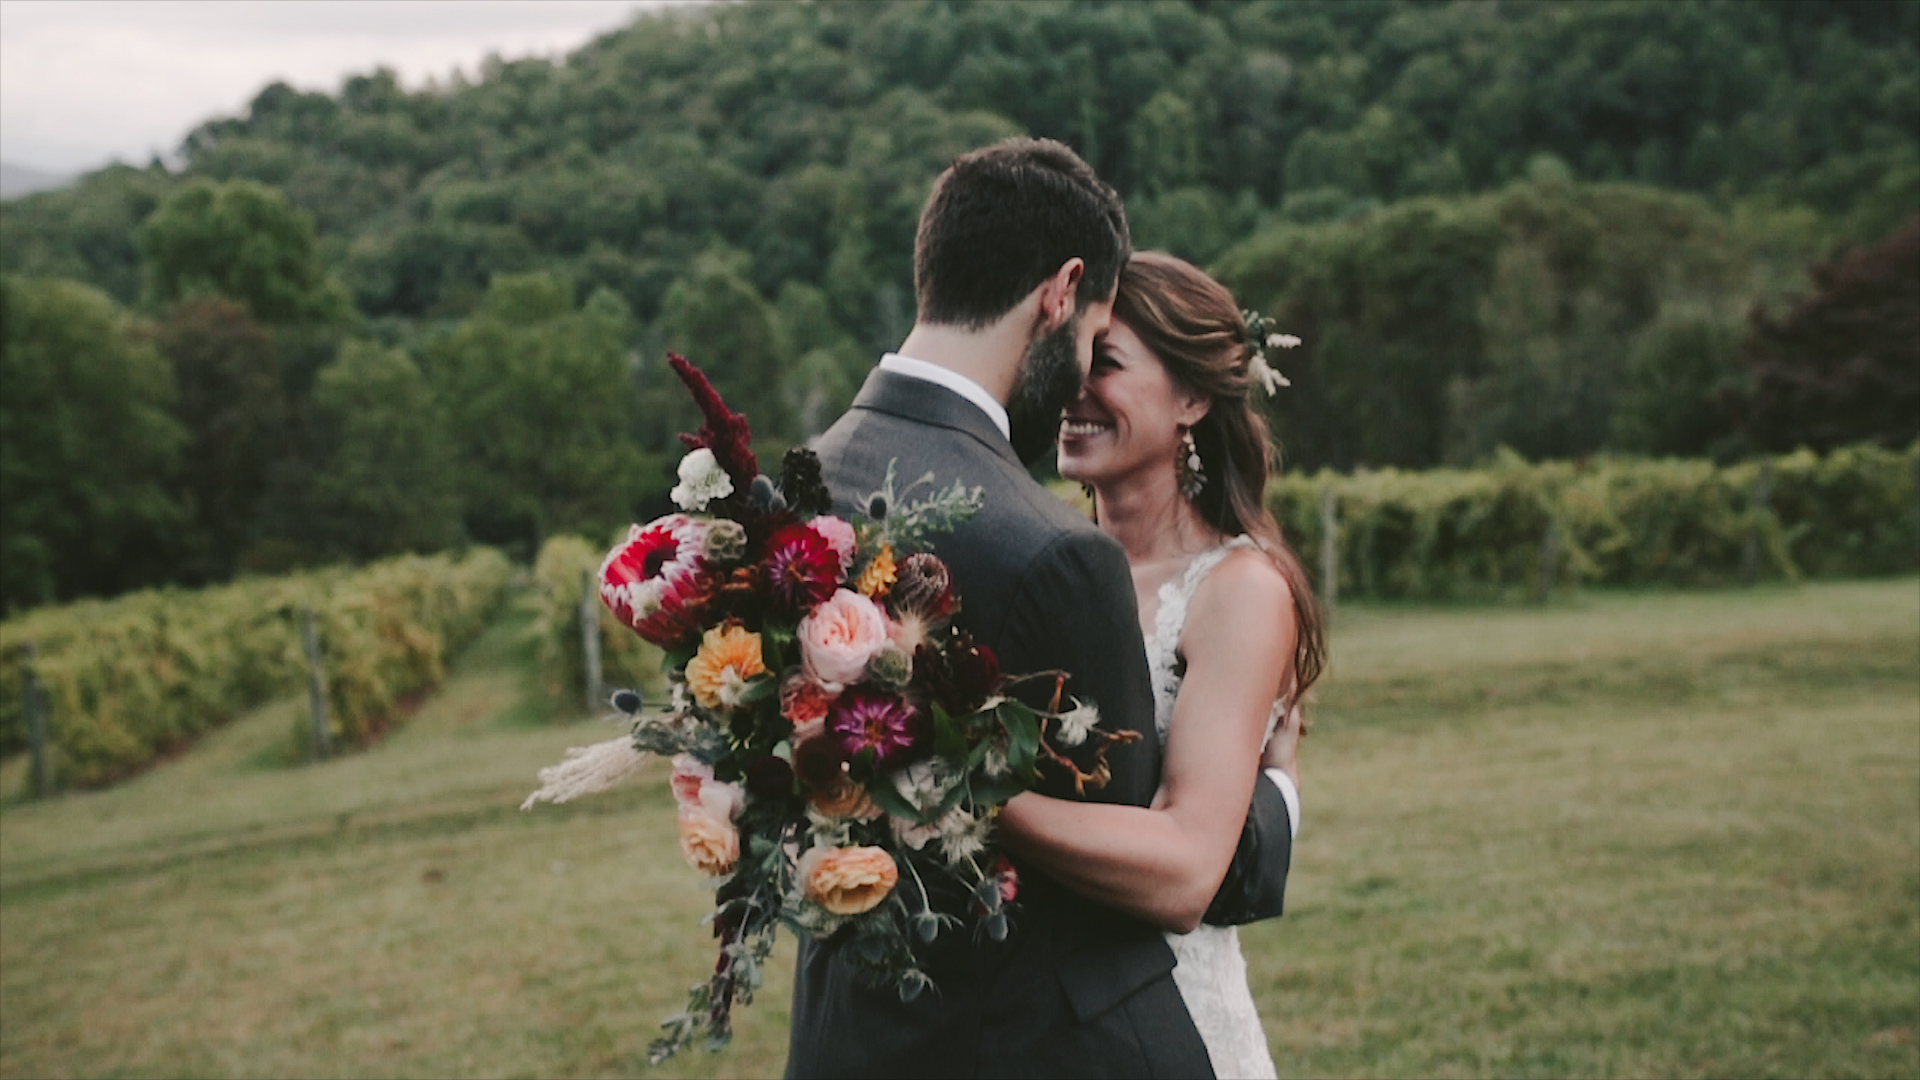 Alyssa + Zach | Sylva, North Carolina | The Vineyards at Betty's Creek